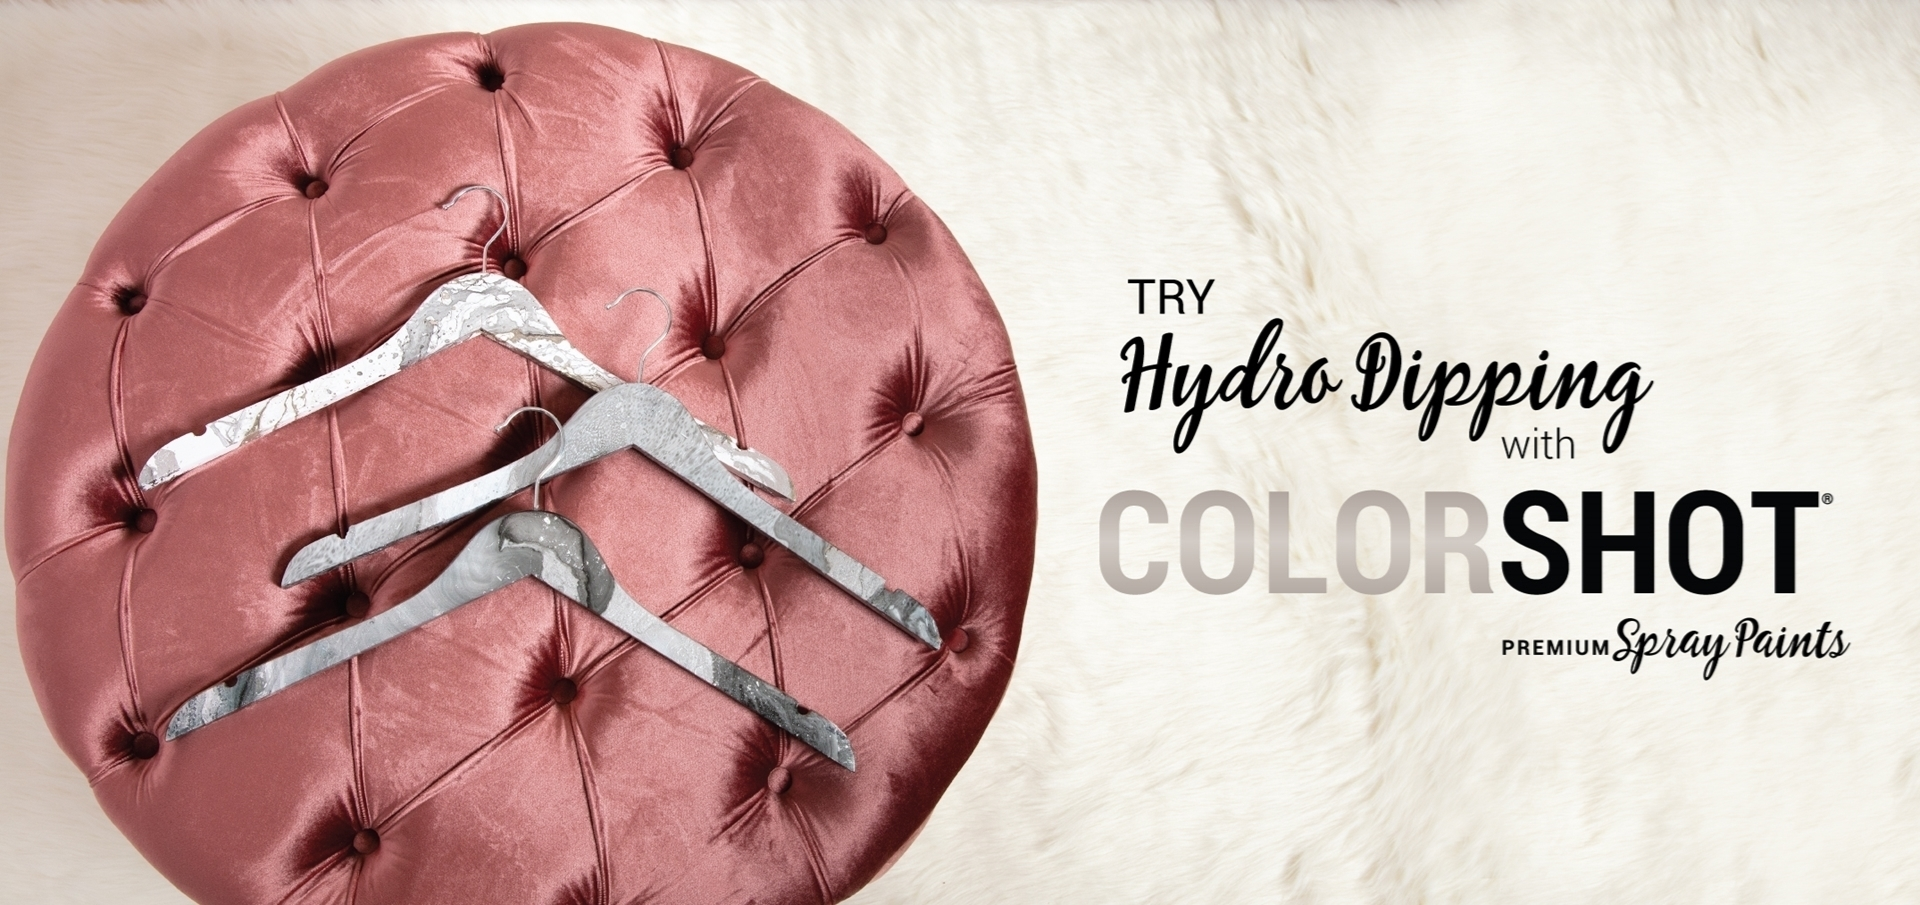 Hydro Dipping Hangers with COLORSHOT Spray Paint